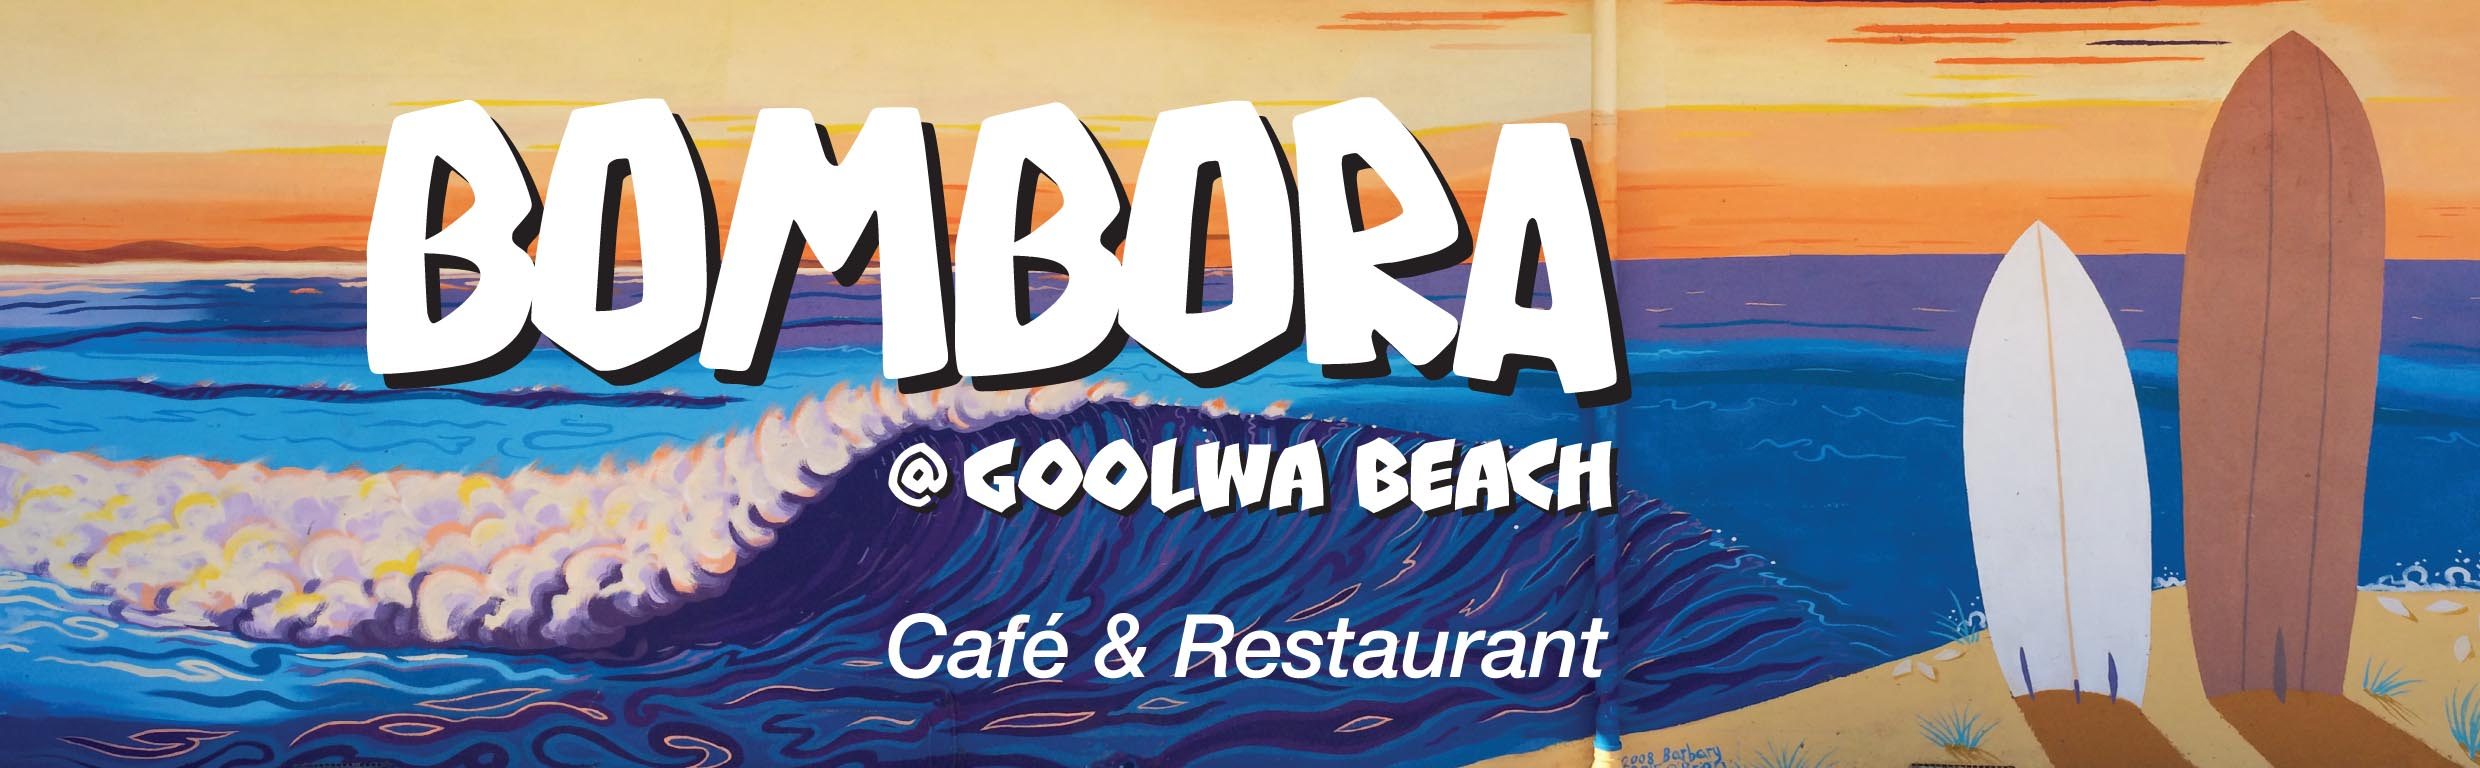 Bombora at Goolwa Beach Cafe